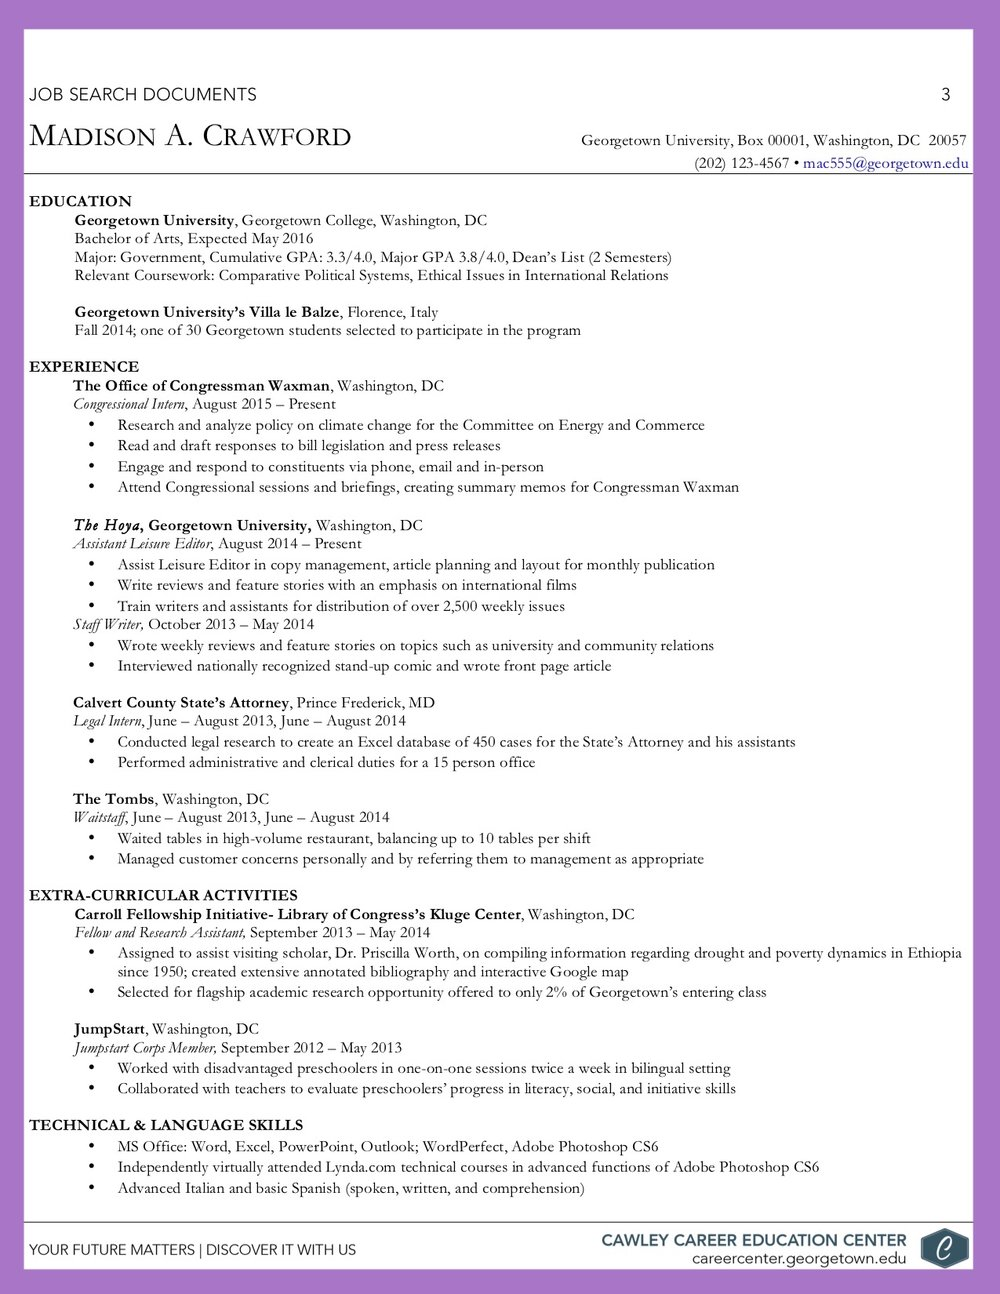 image of a resume cover letter 2019 image resize upload image of a good resume 2020 image sample of a resume image of a simple resume image of a professional resume image of a basic resume image of a job resume example